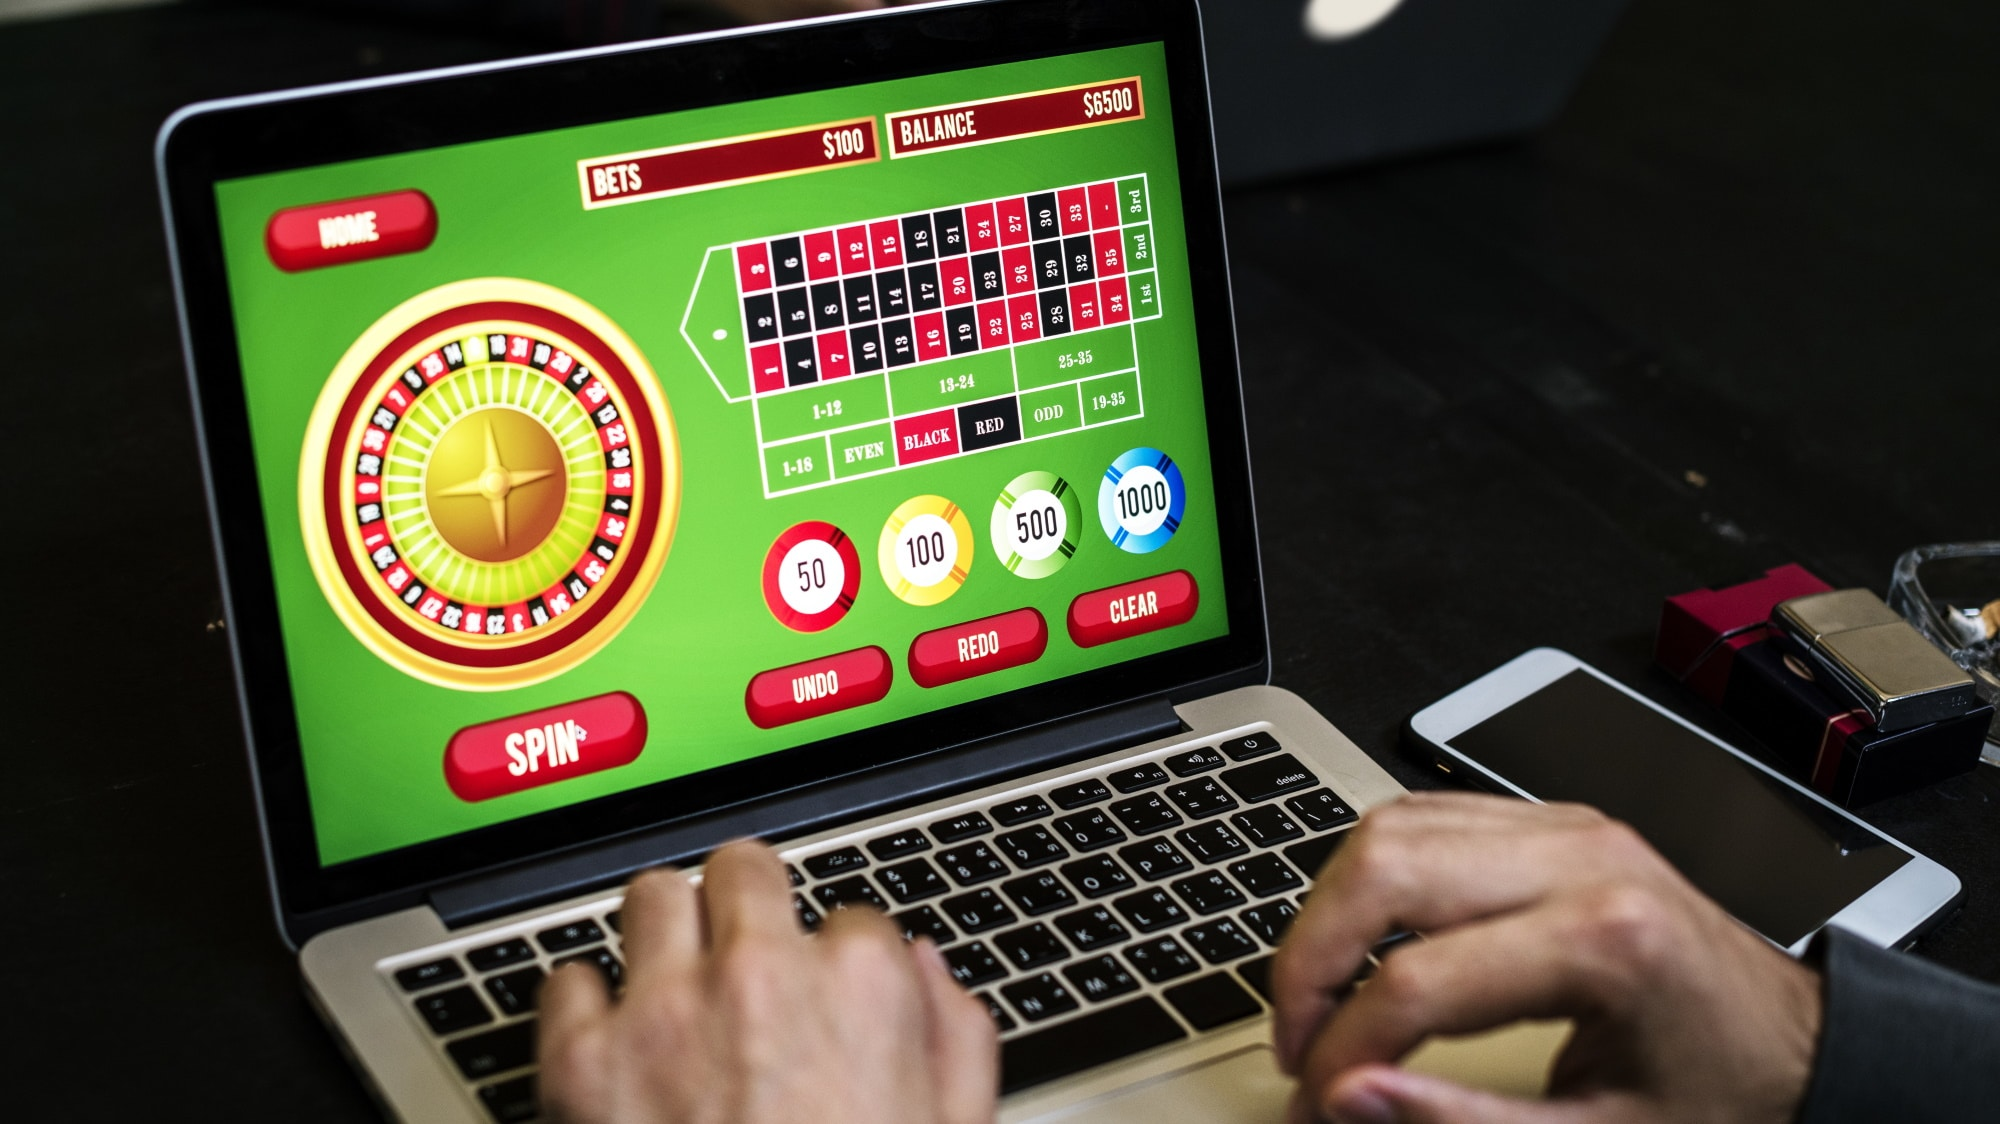 The legality of the casino